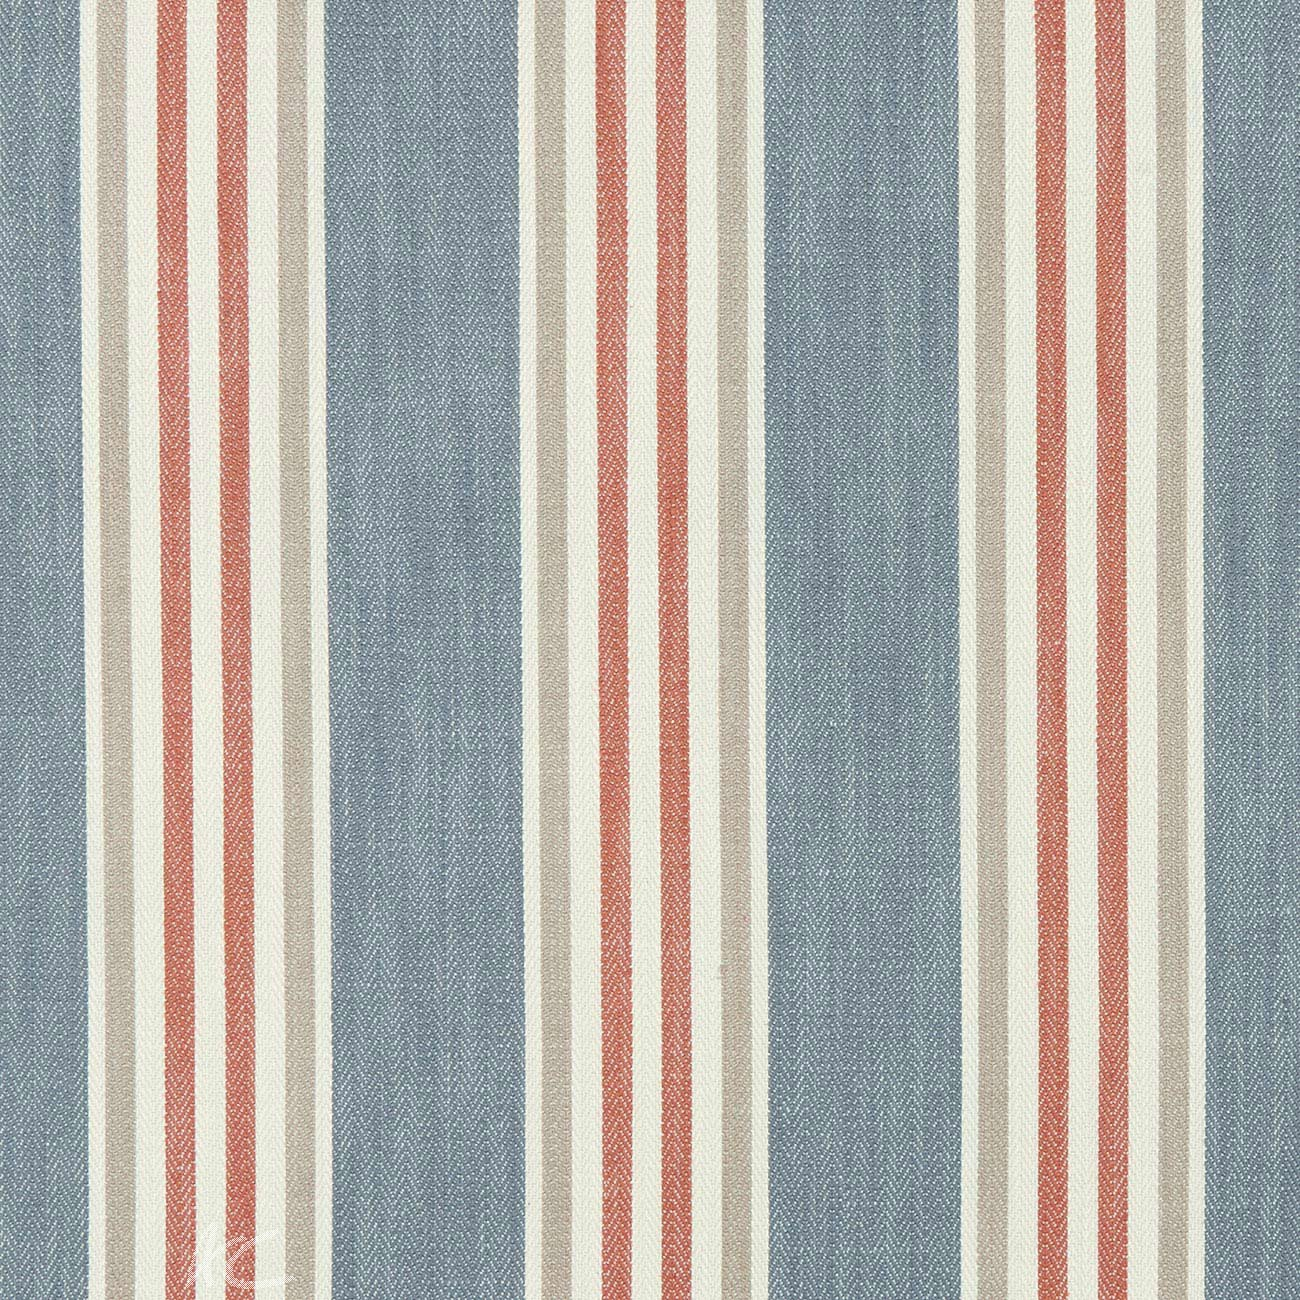 Clarke and Clarke Bloomsbury Quentin Denim/spice Made to Measure Curtains